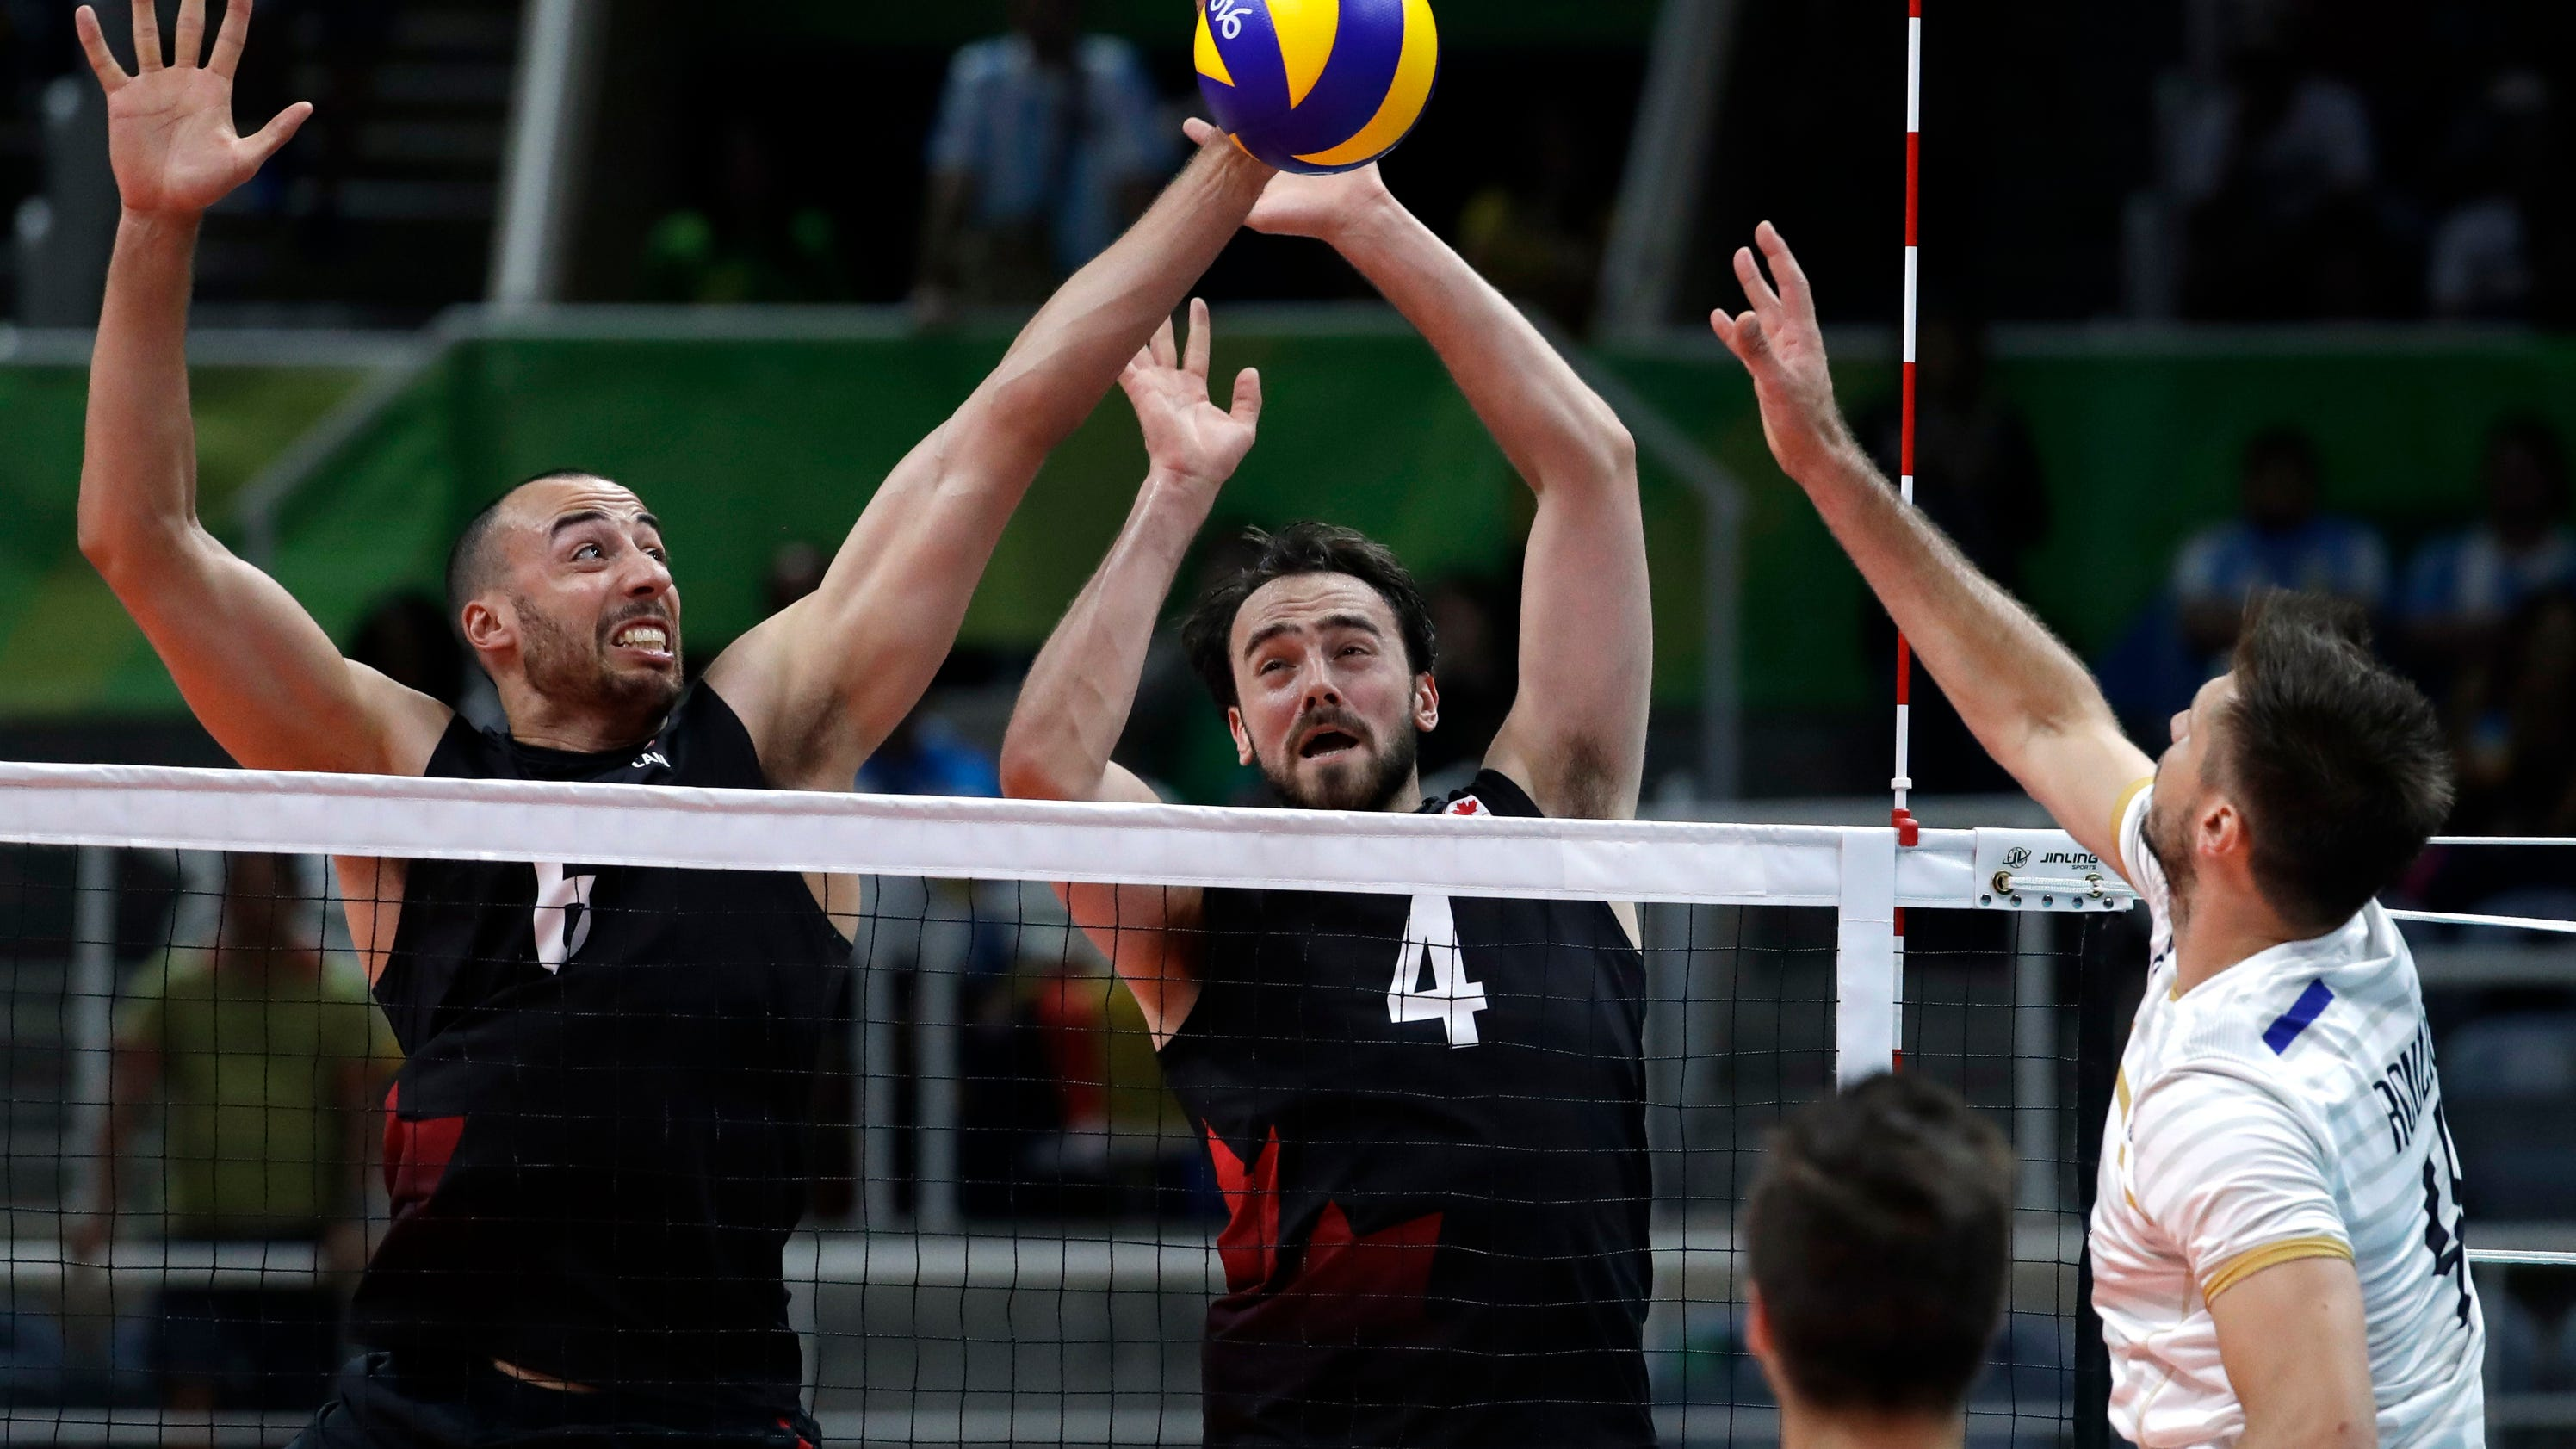 Canadian men's volleyball makes big strides on world stage